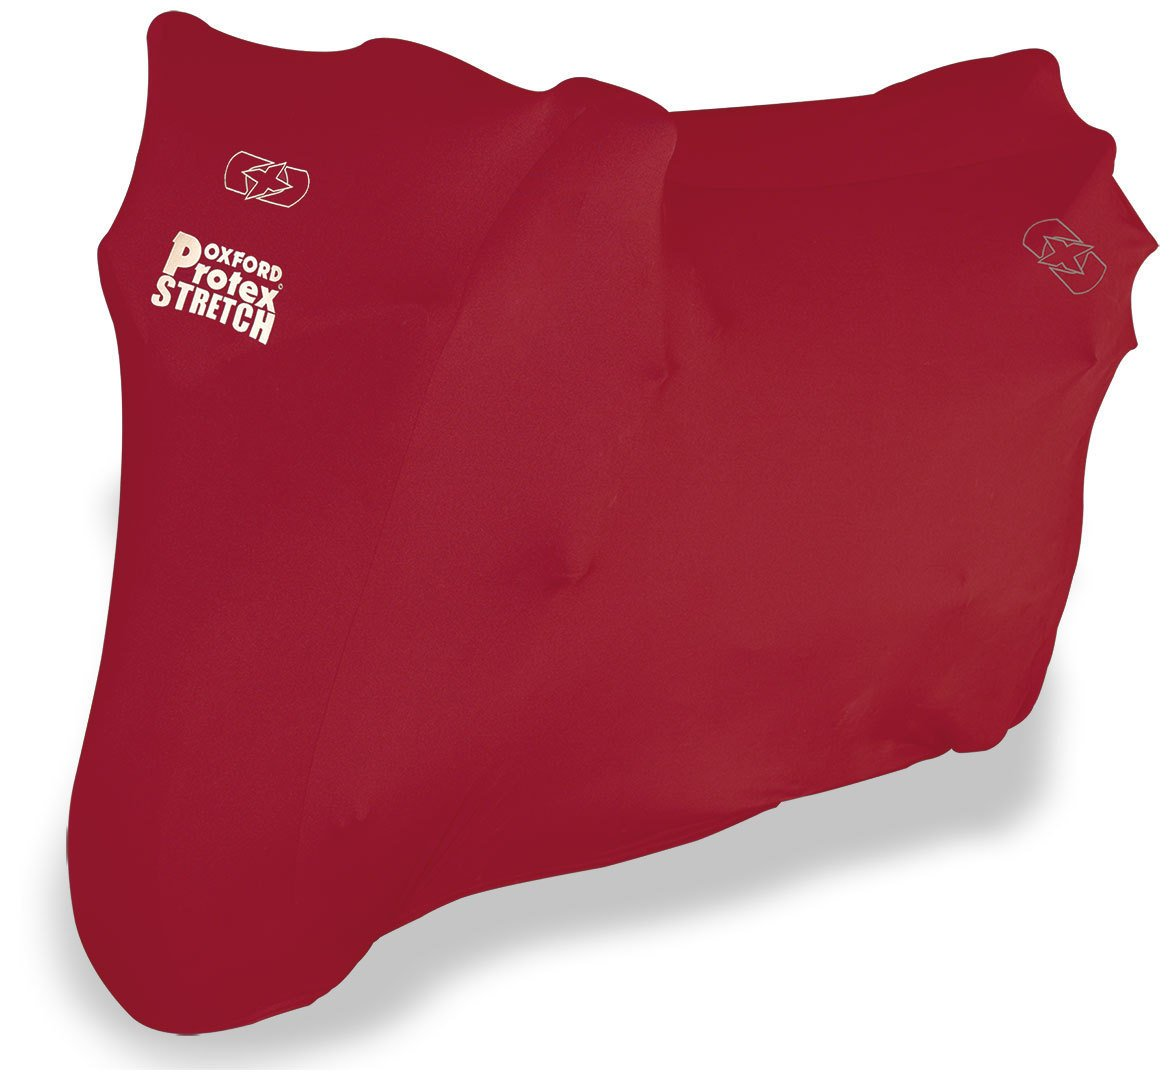 OXFORD PROTEX PREMIUM STRETCH FIT INDOOR MOTORCYCLE COVER zz-cv170